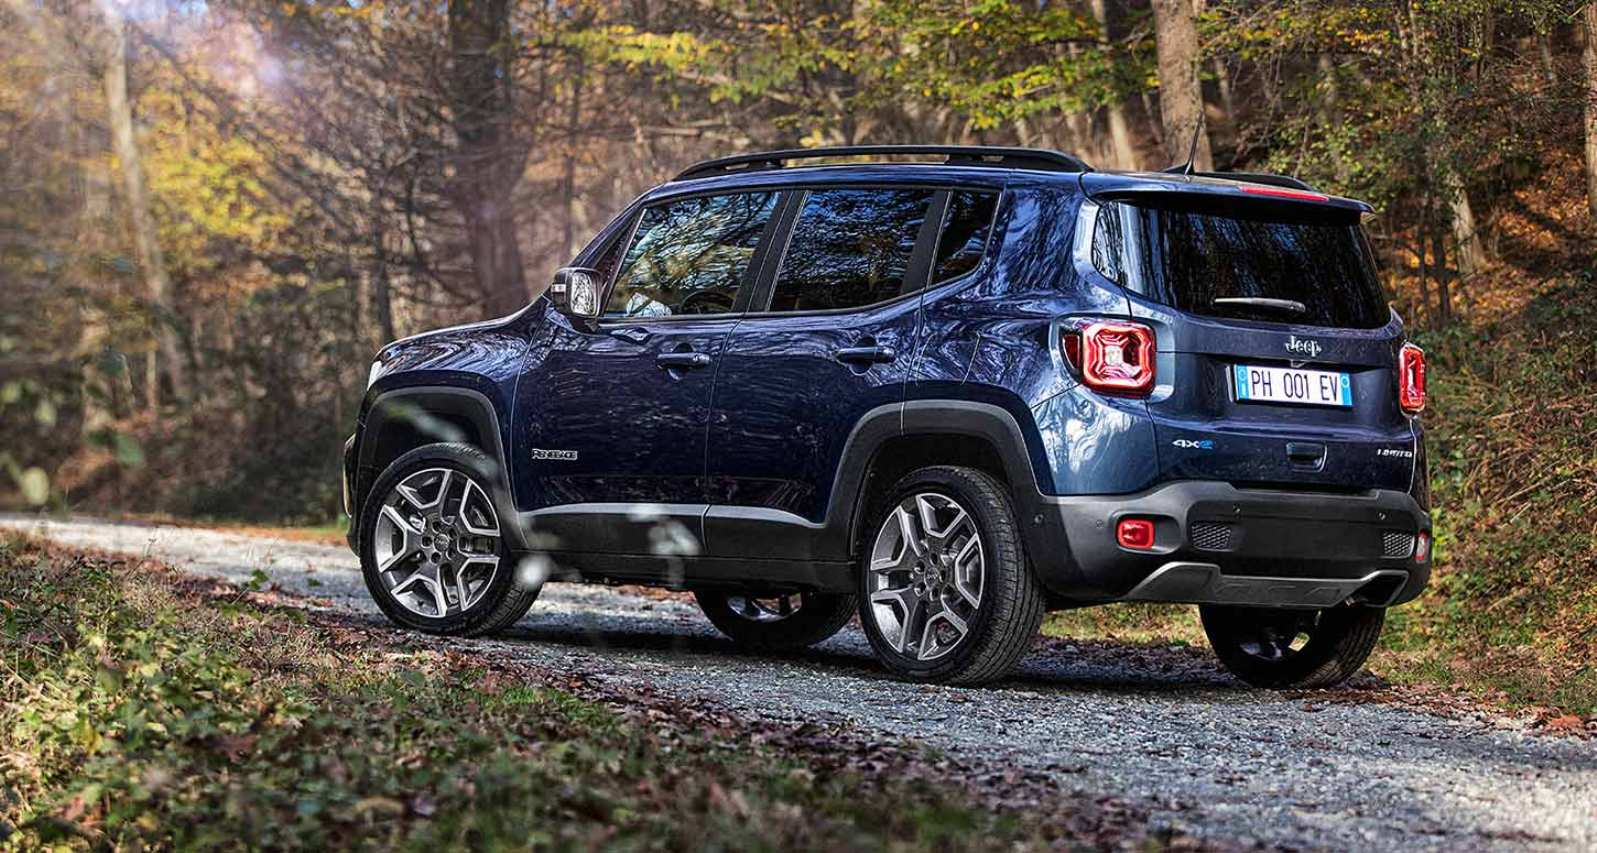 Jeep Renegade 4xe Jeep Compass 4xe (4)